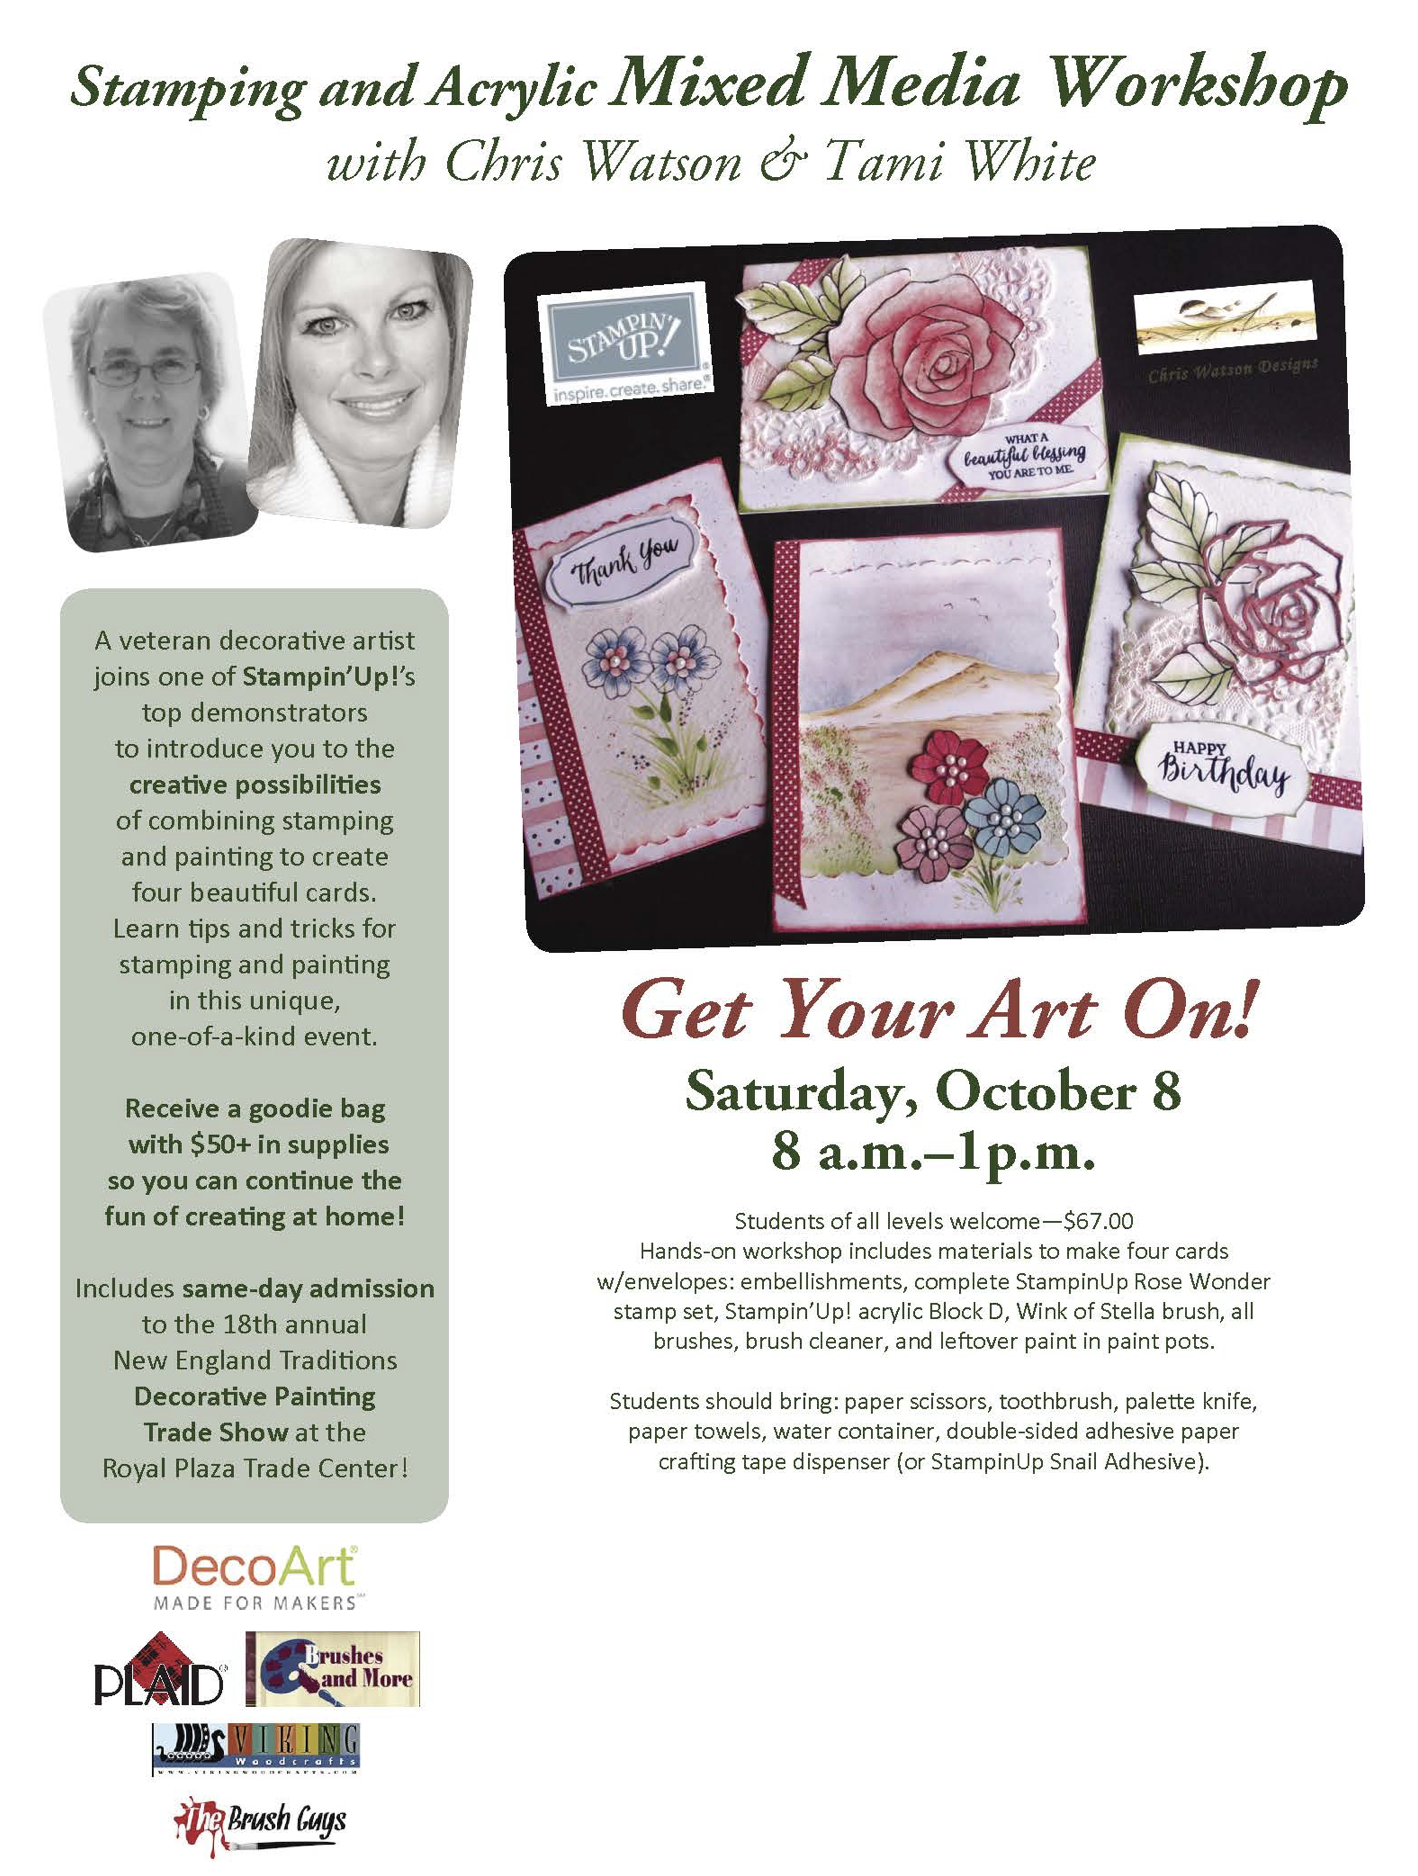 CLASS: Get Your Art on at New England Traditions Convention Oct 8 – space is limited | Stampin Up Demonstrator - Tami White - Stamp With Tami Crafting and Card-Making Stampin Up blog